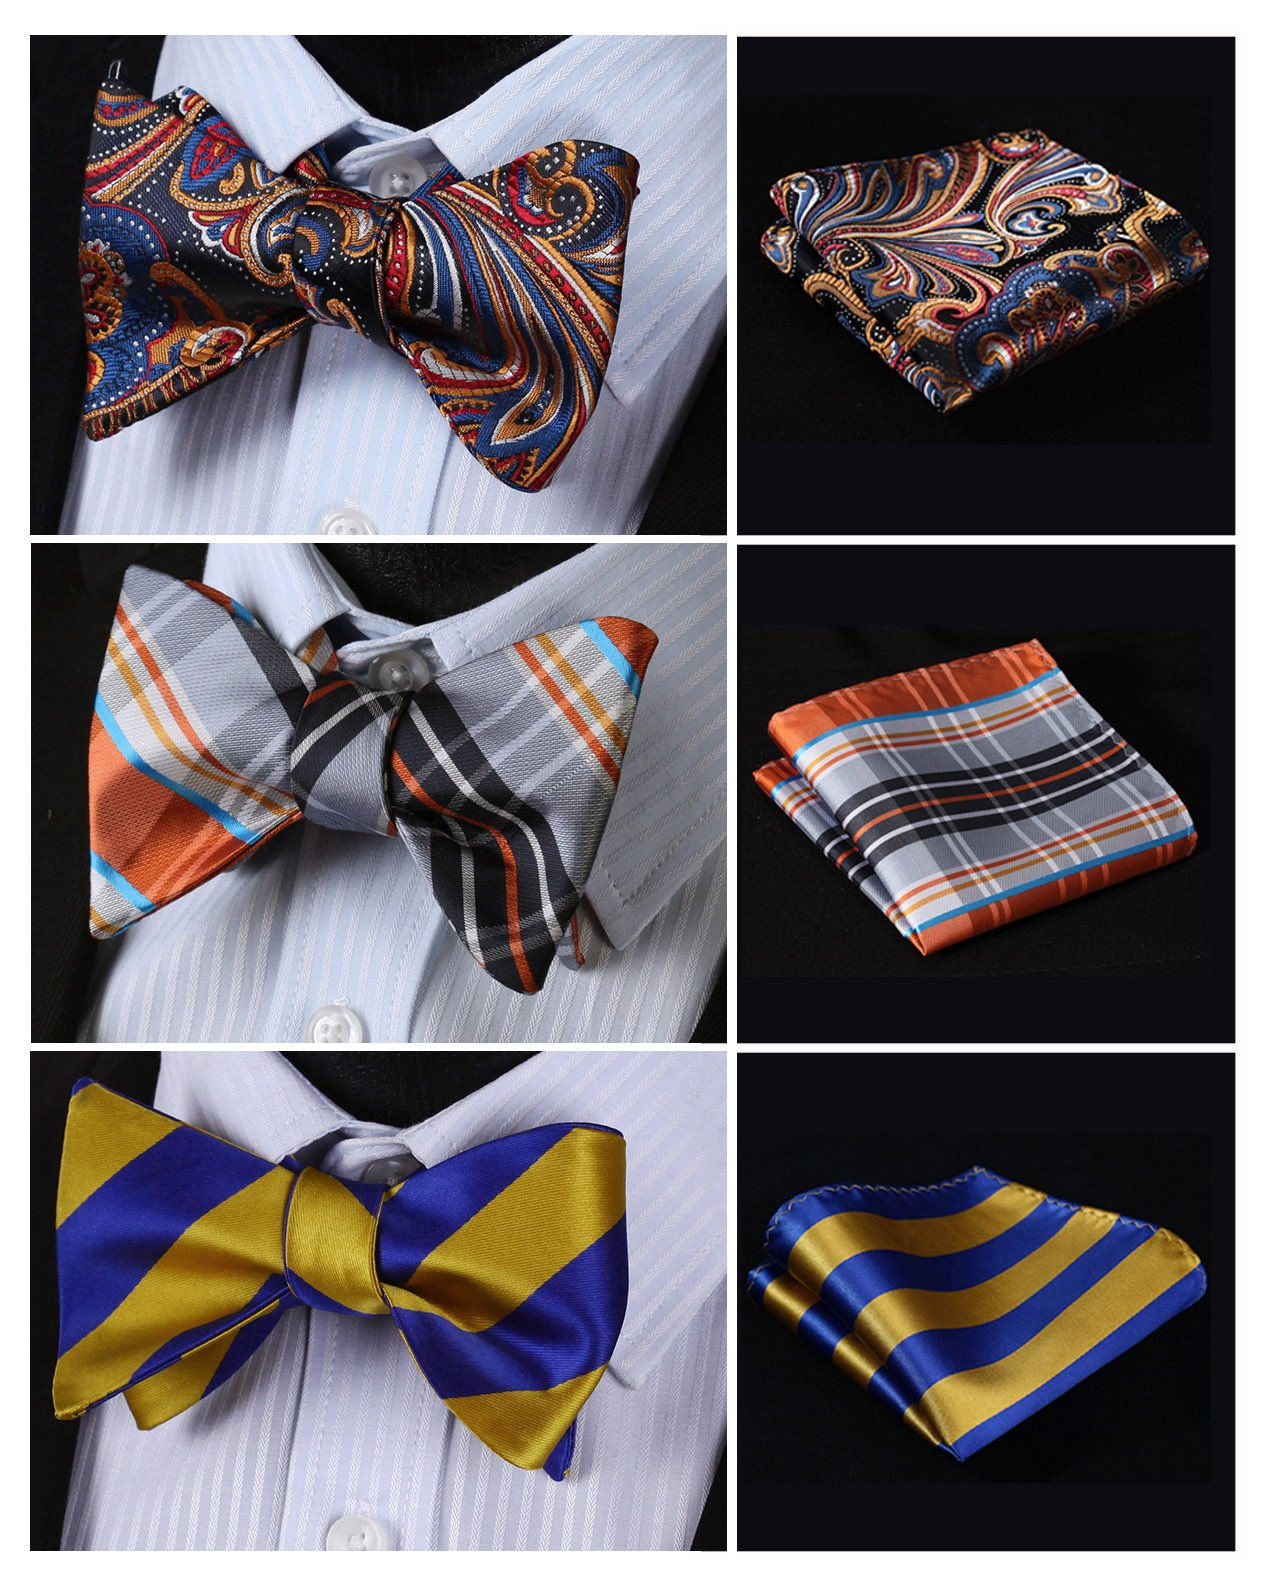 HISDERN 3pcs Mixed Design Classic Men's Self-Tie Bow tie & Pocket Square – Multiple Sets